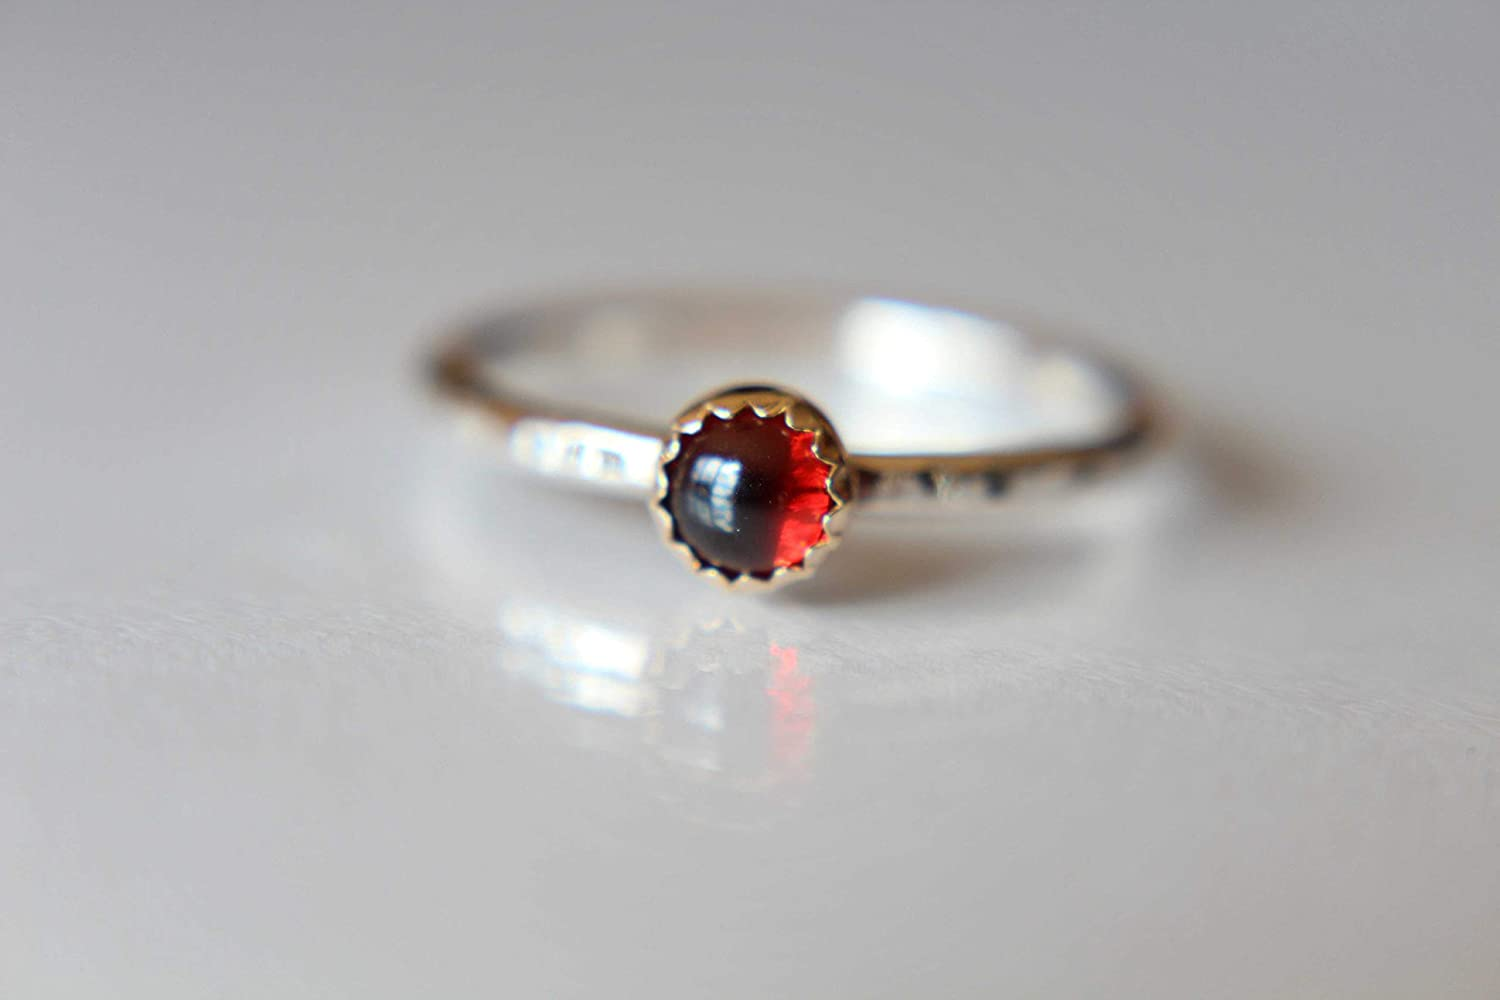 Gift for women Valentines day gift Handmade Sterling Silver stacking ring with garnet gemstone